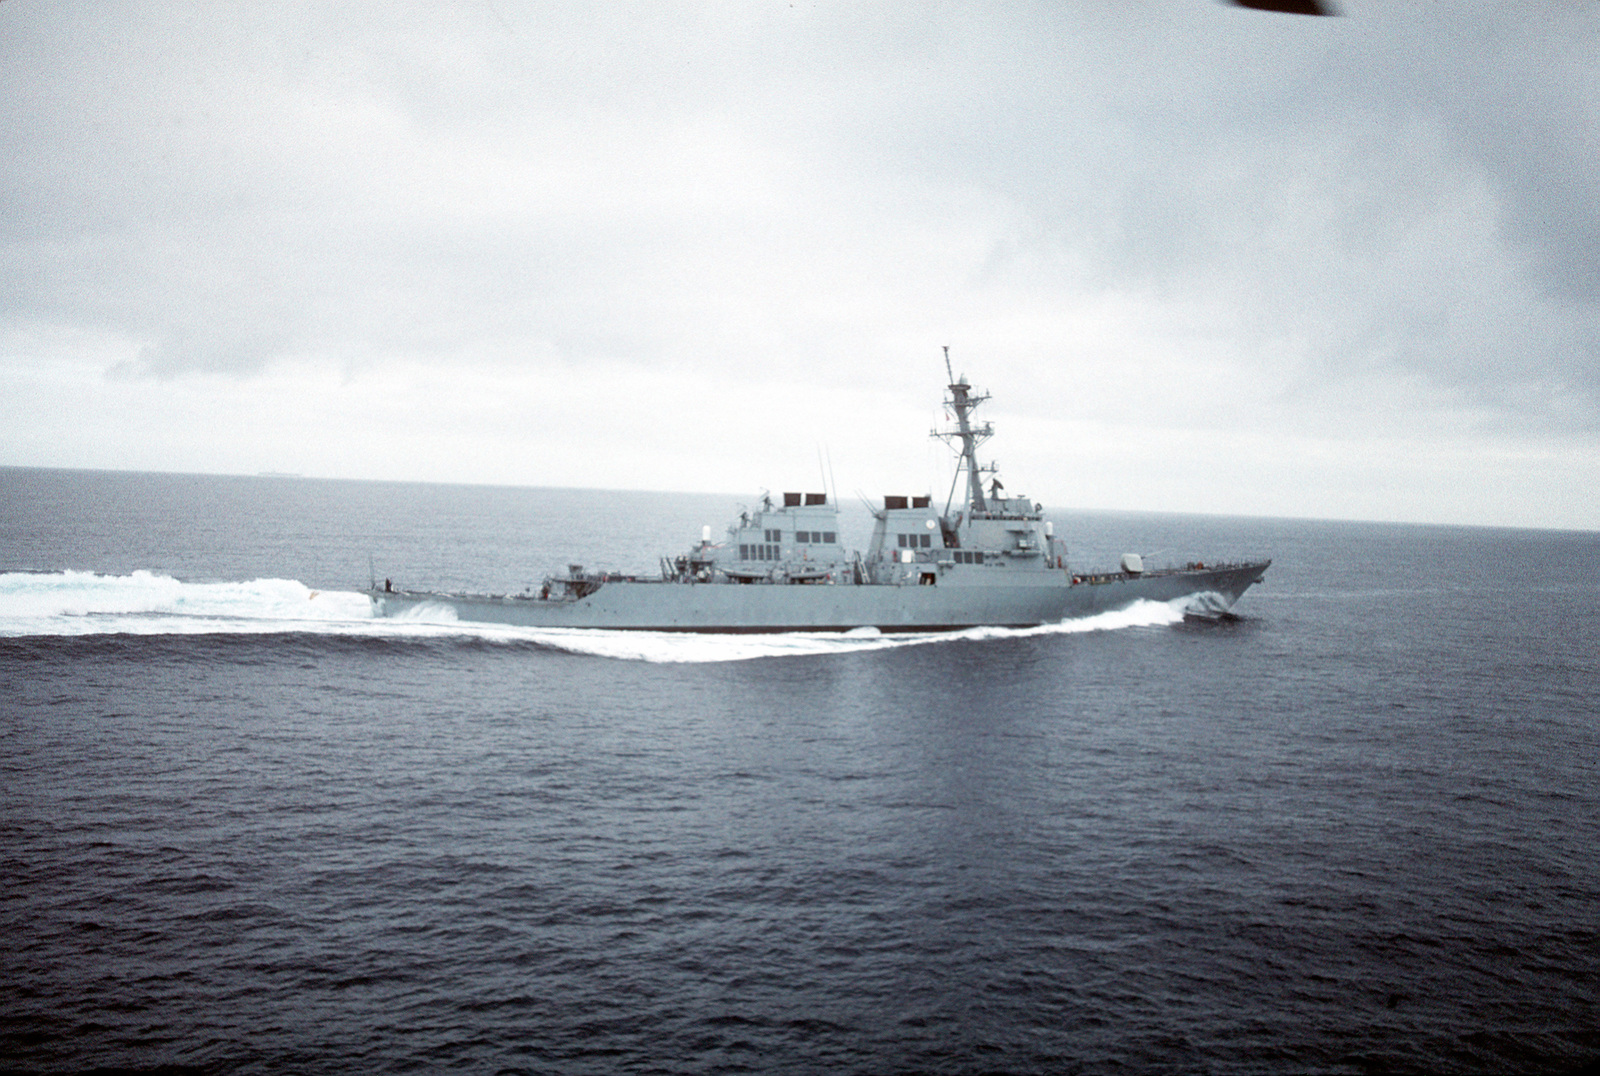 A starboard beam view of the guided missile destroyer USS